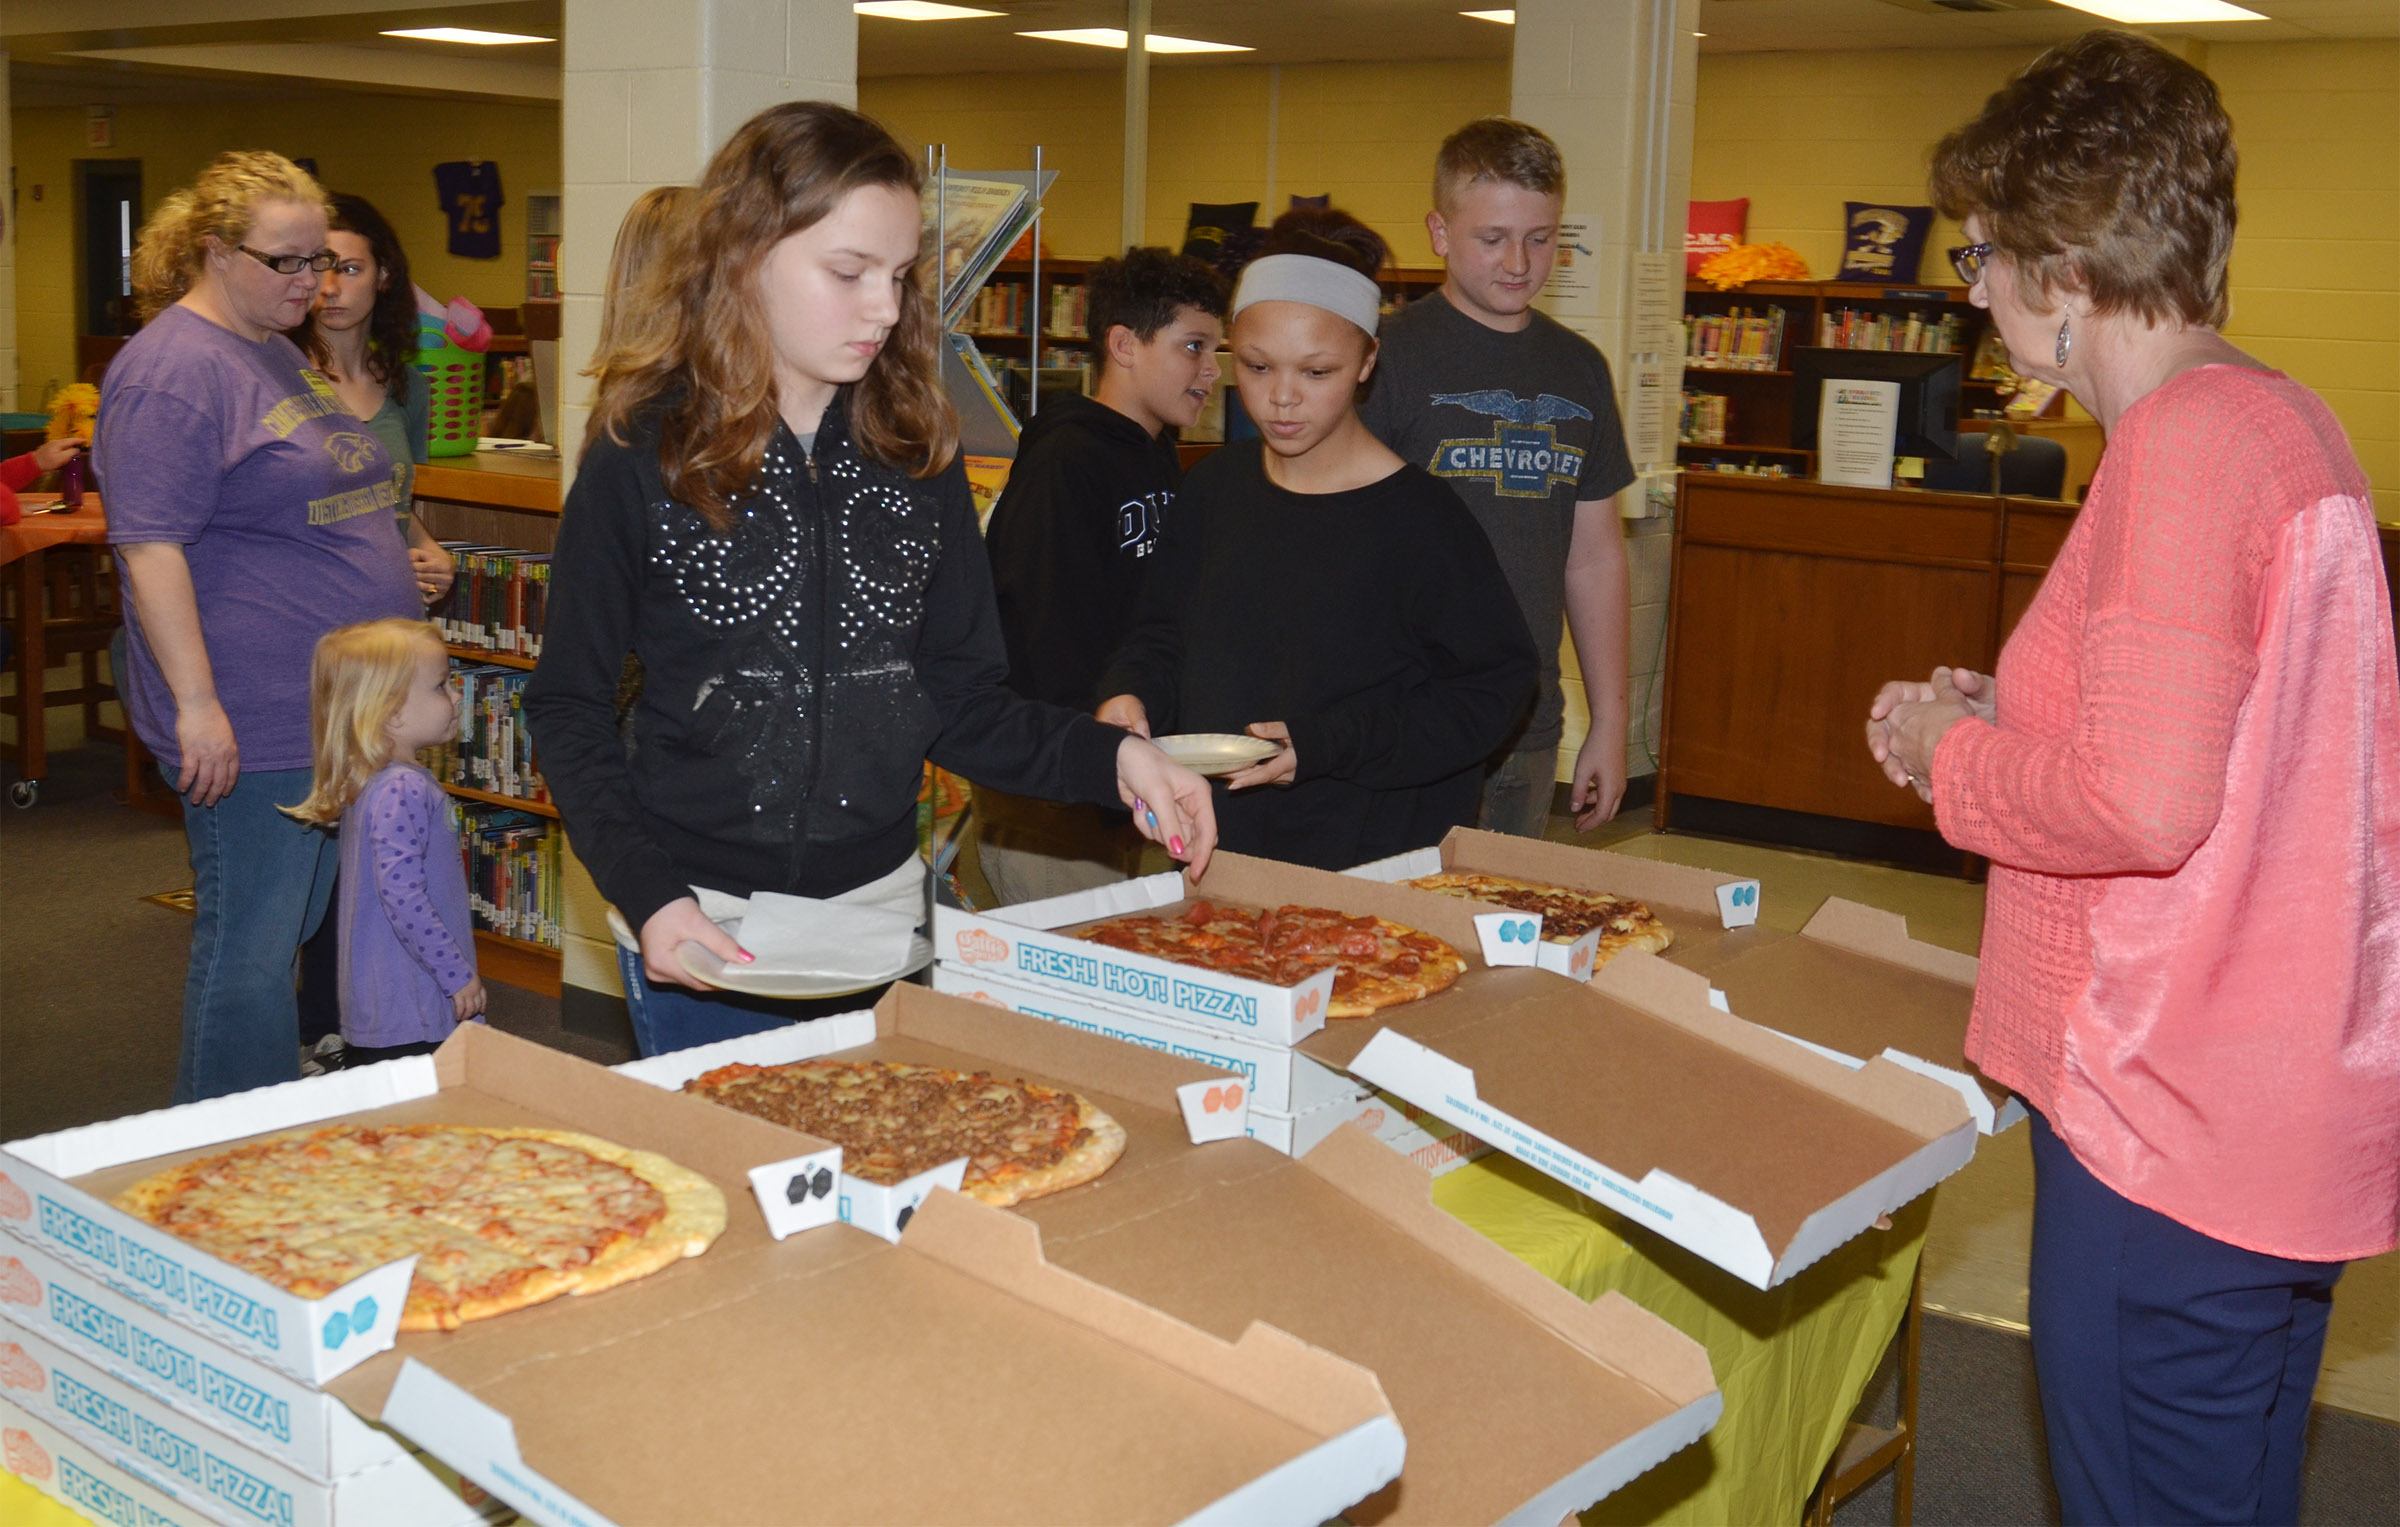 CMS student leaders are treated to a special pizza lunch.